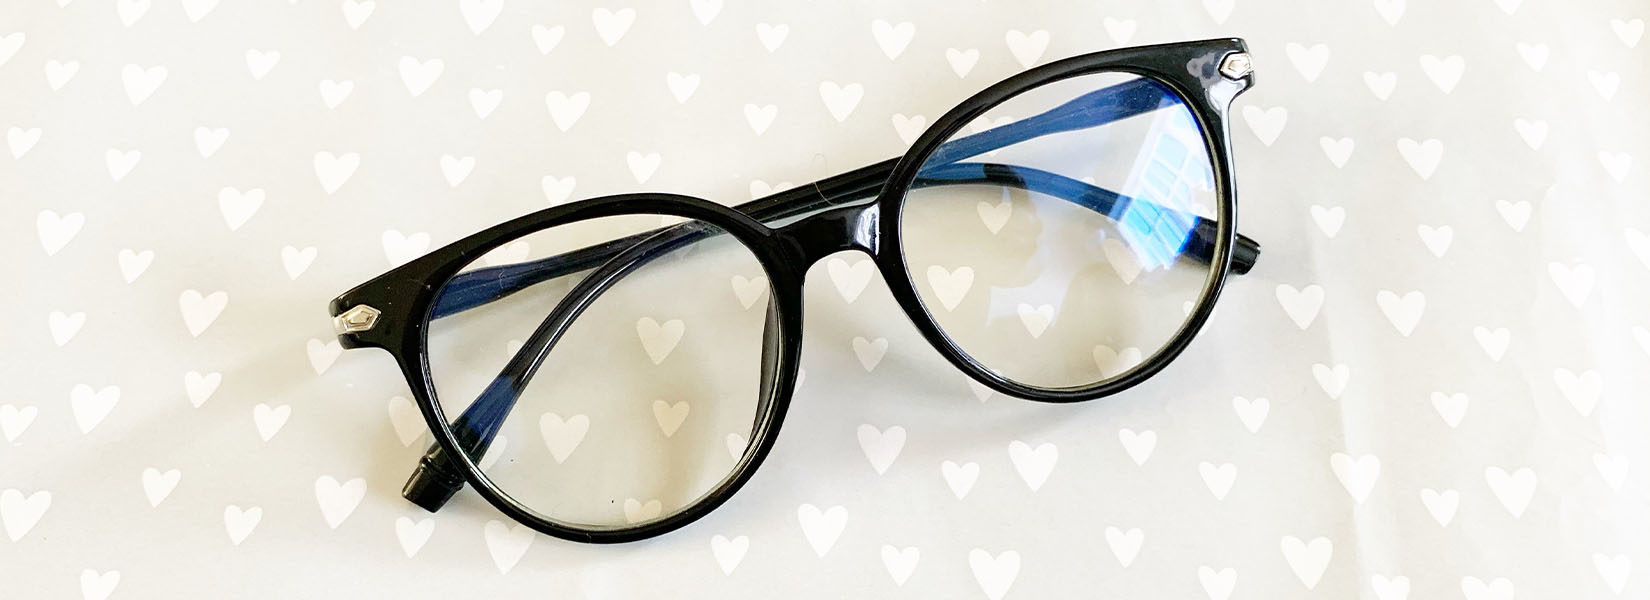 Do Blue-Light Blocking Glasses Actually Work?